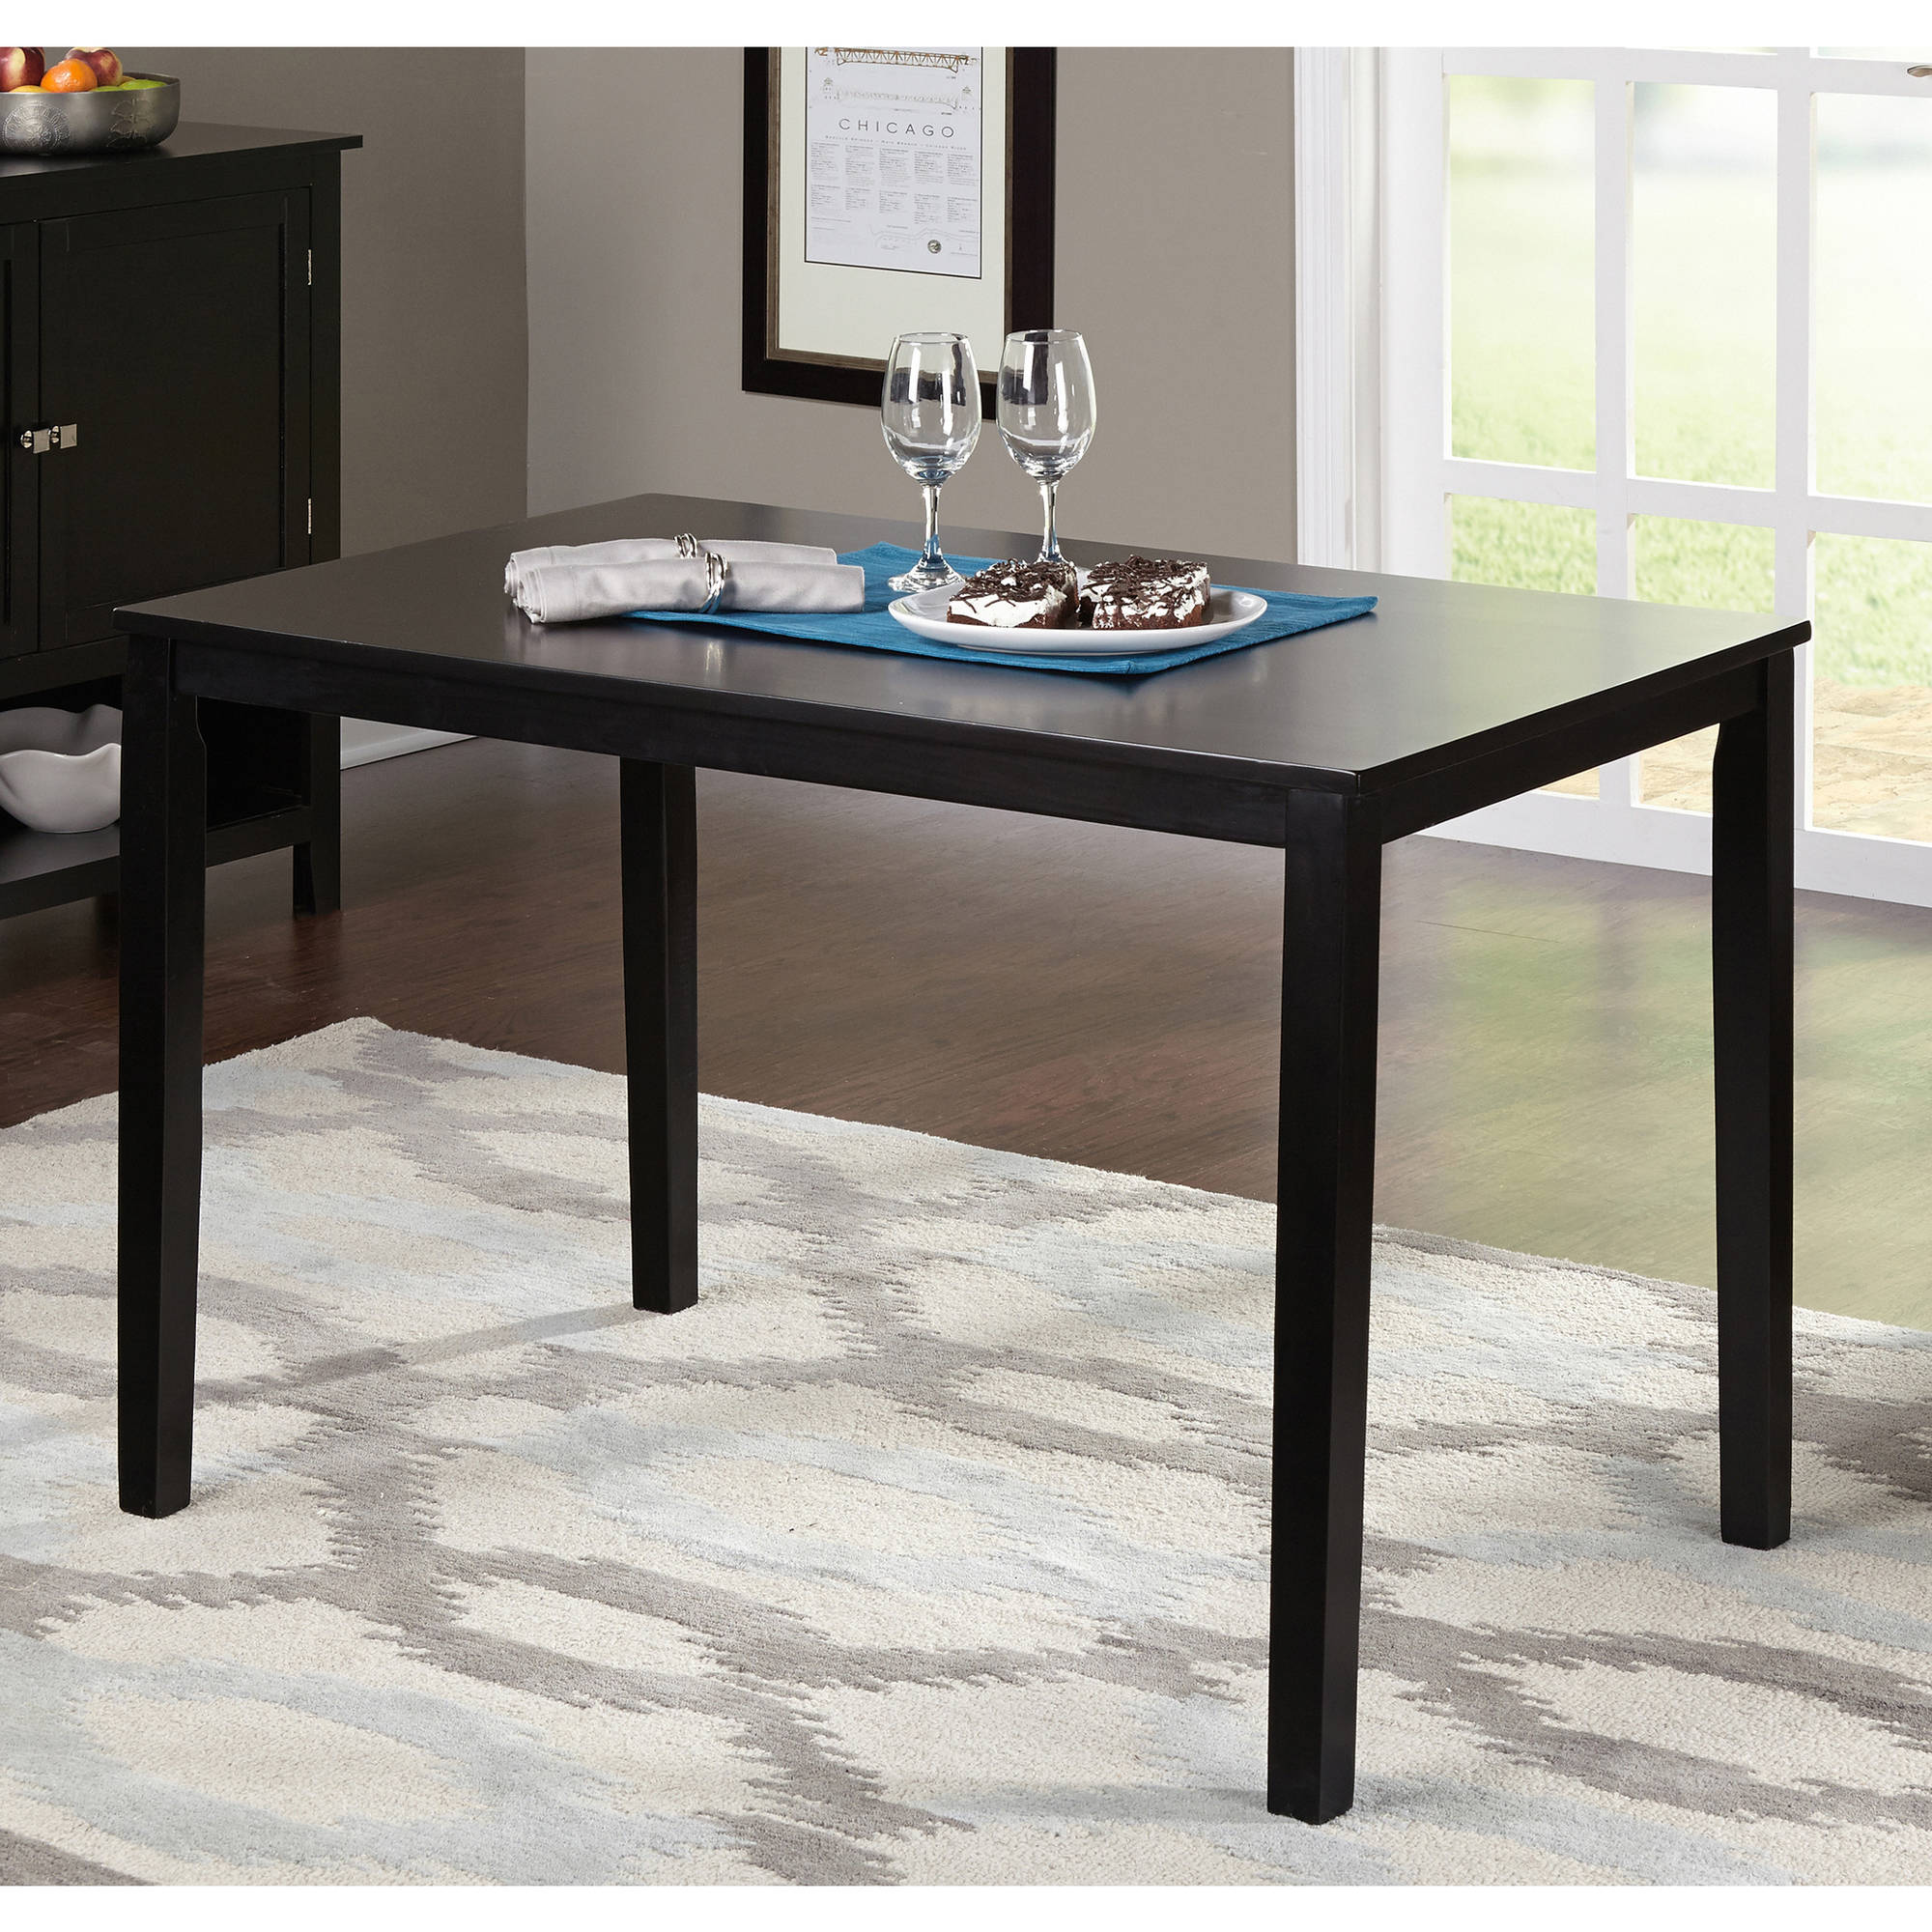 Black Dining Table tms contemporary dining table, white - walmart